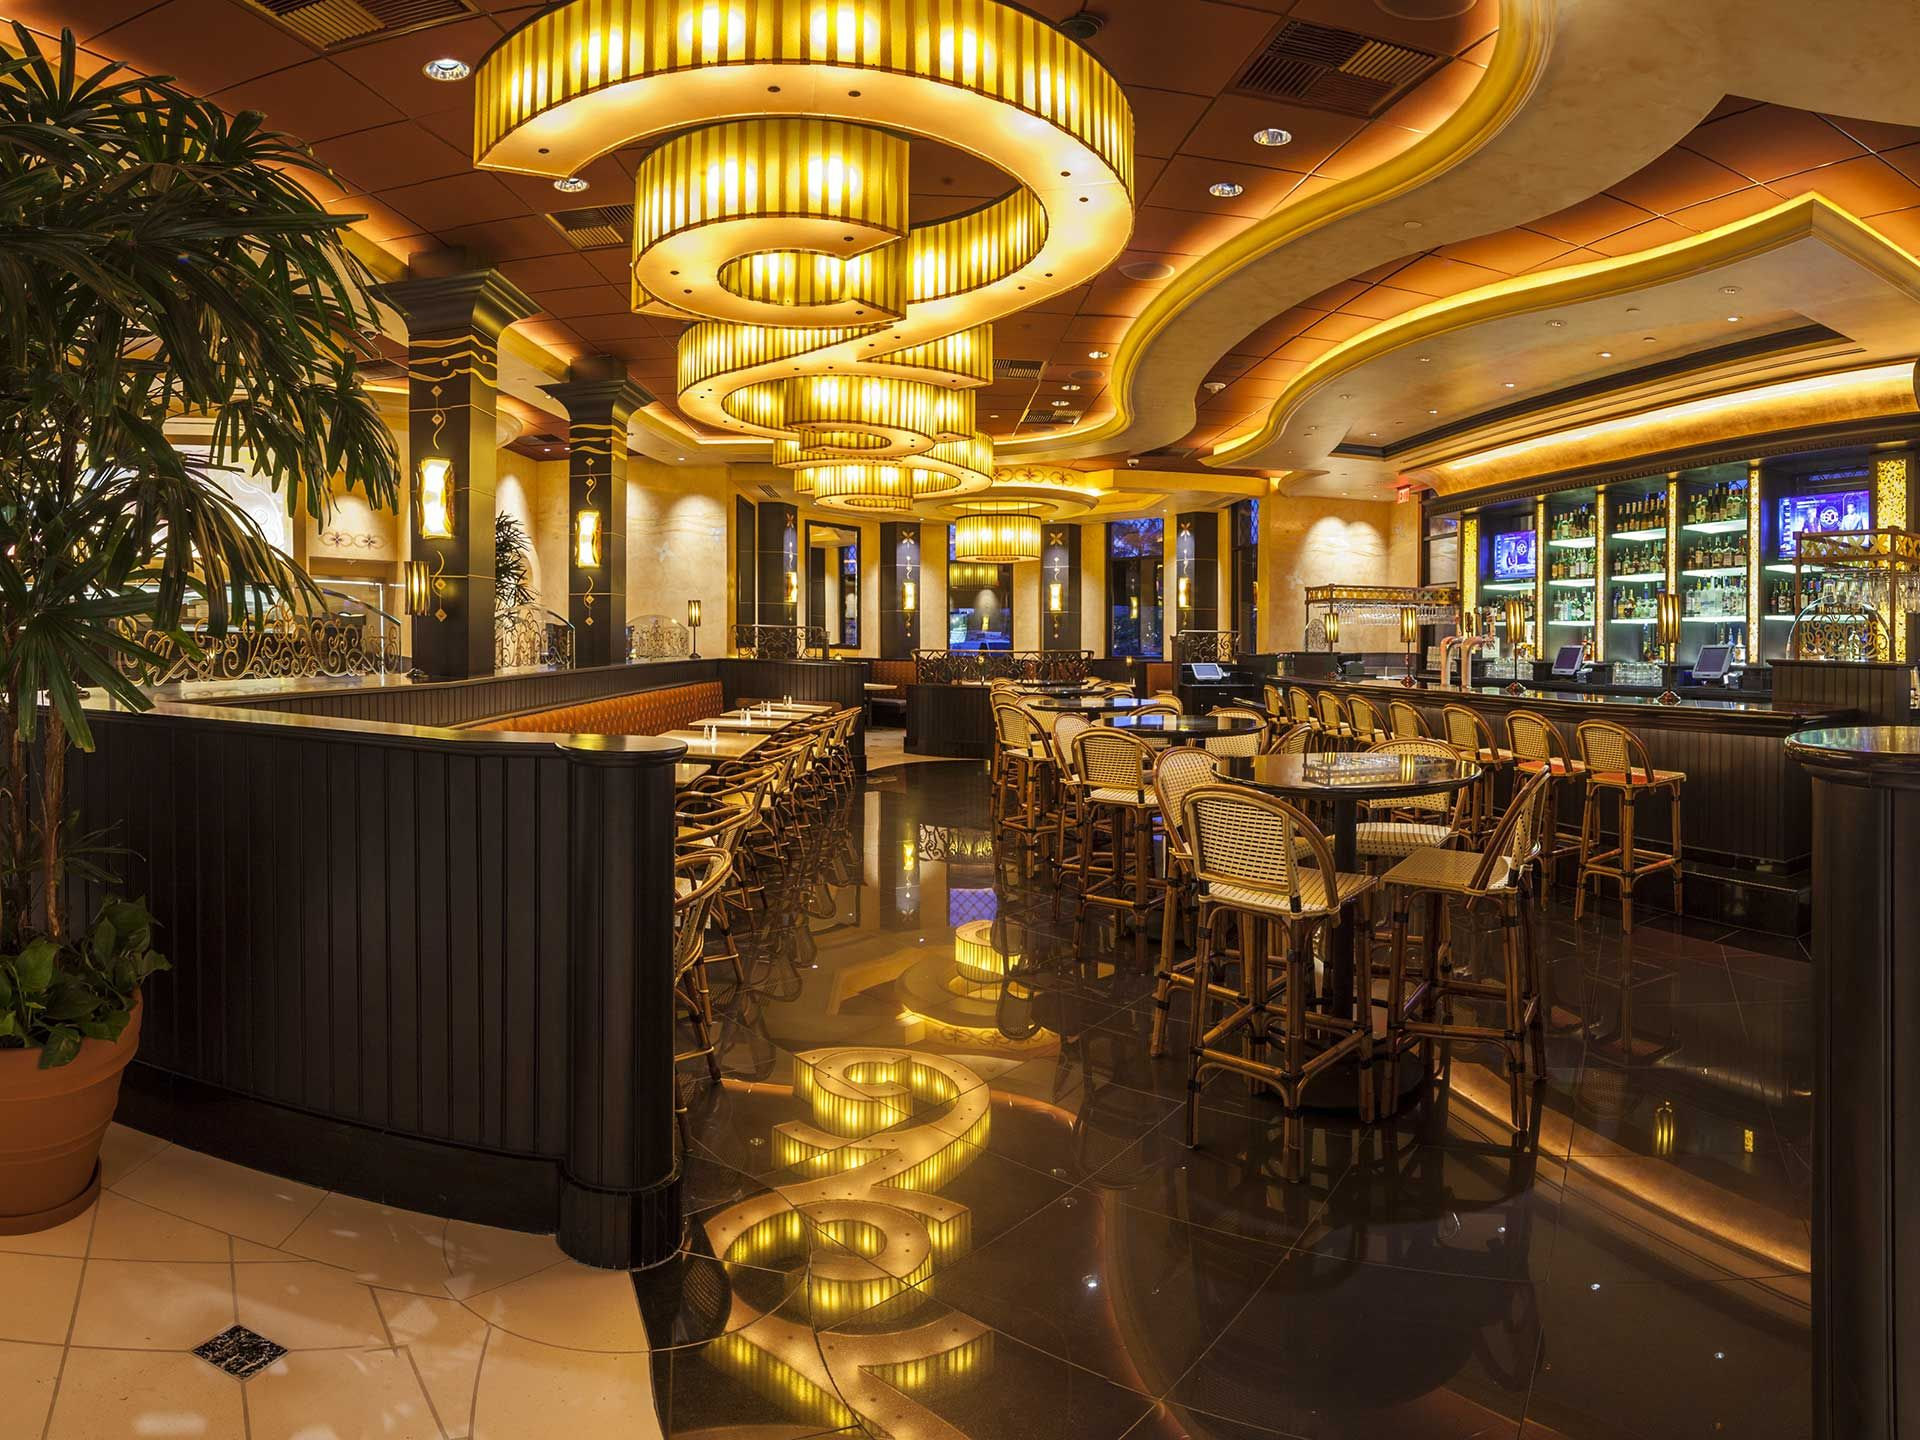 7 Things Cheesecake Factory Employees Want You to Know